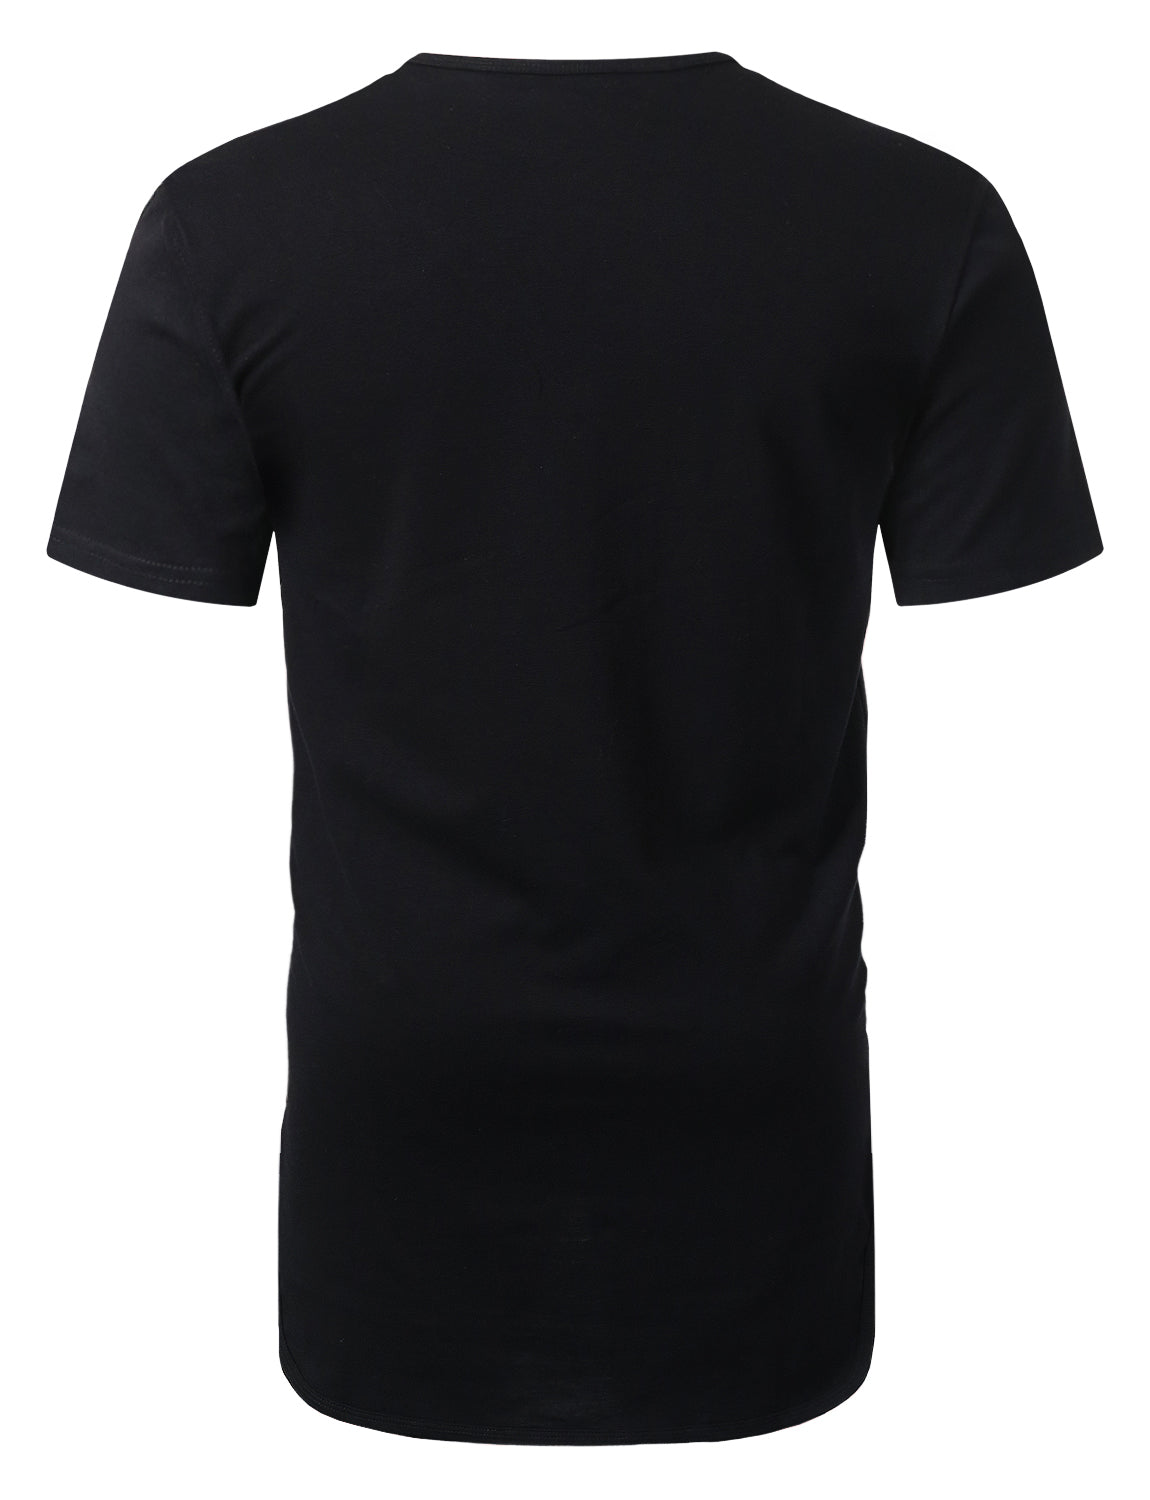 BLACK Crewneck Basic Longline T-shirt - URBANCREWS